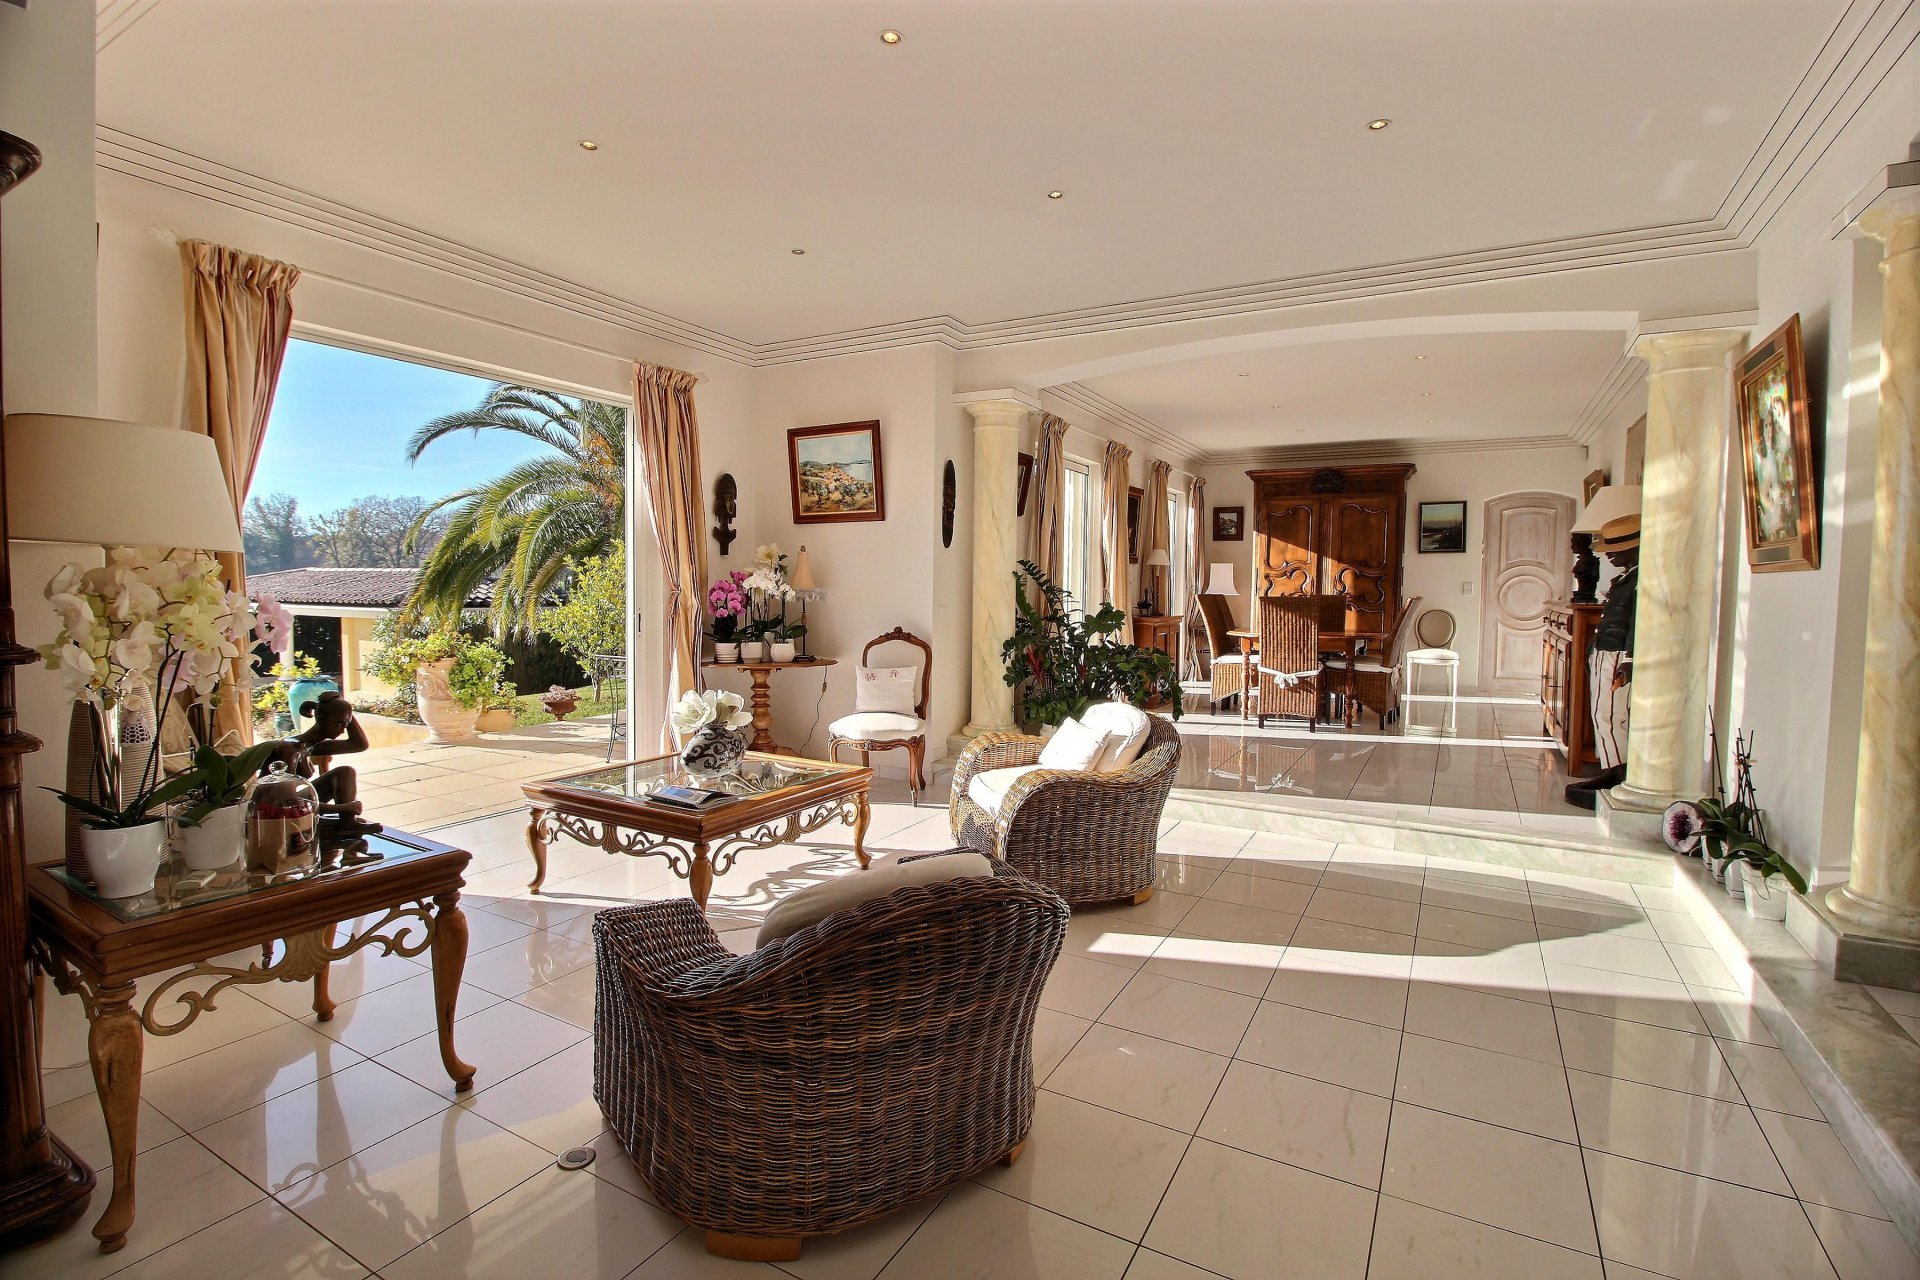 Luxury villa with beautiful large pool and gardens close to the village